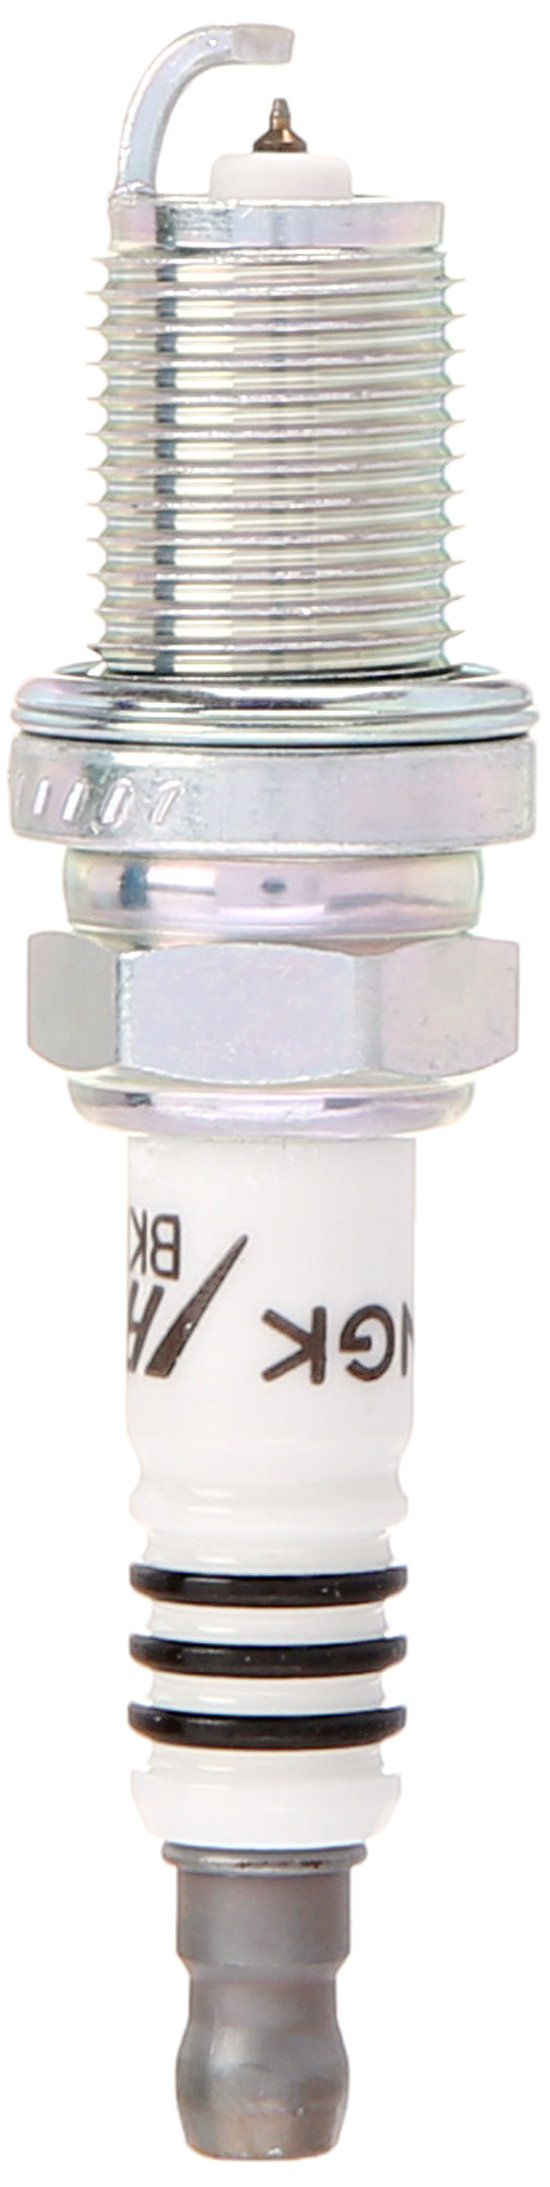 NGK 5464 BKR5EIX-11 Iridium IX Spark Plug, Pack of 4 product image